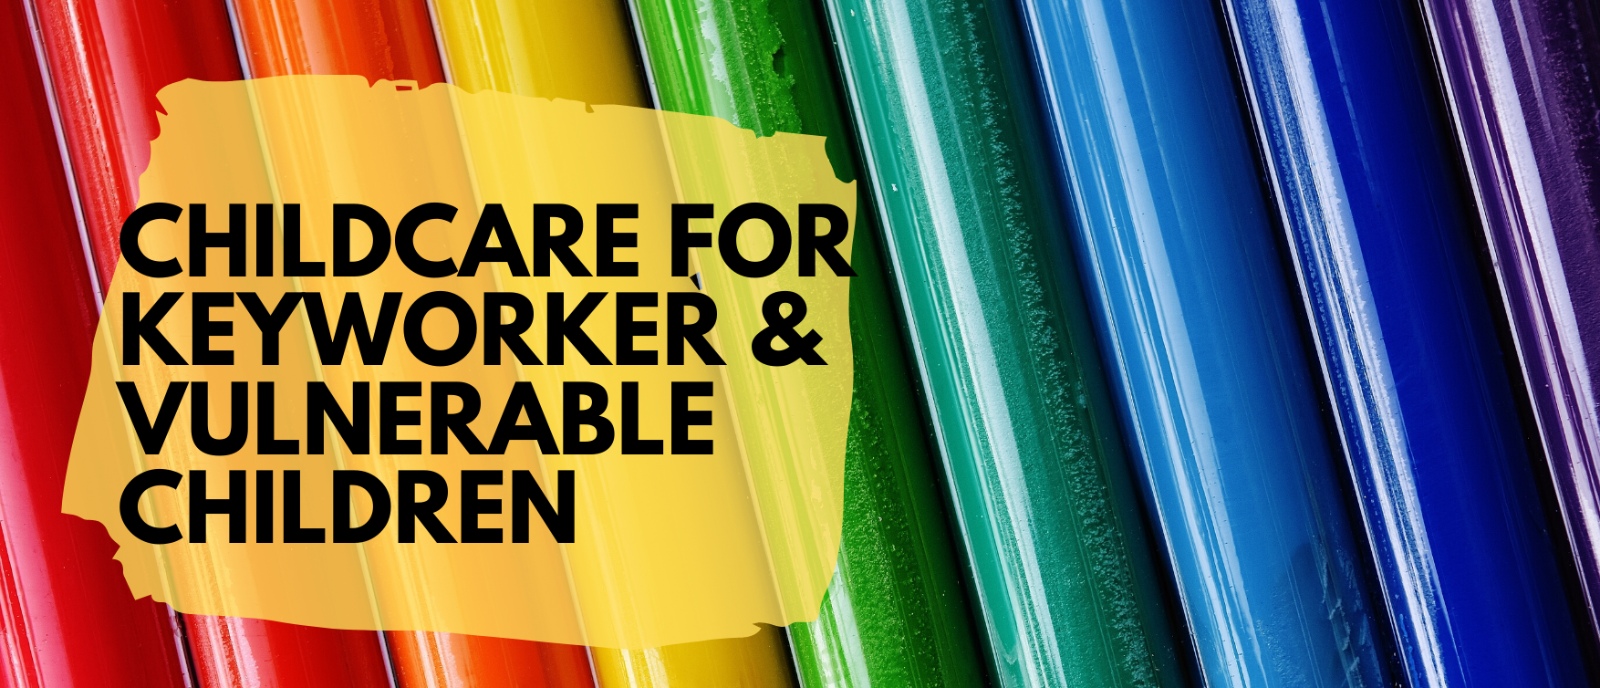 Click here for childcare for key workers and vulnerable children.